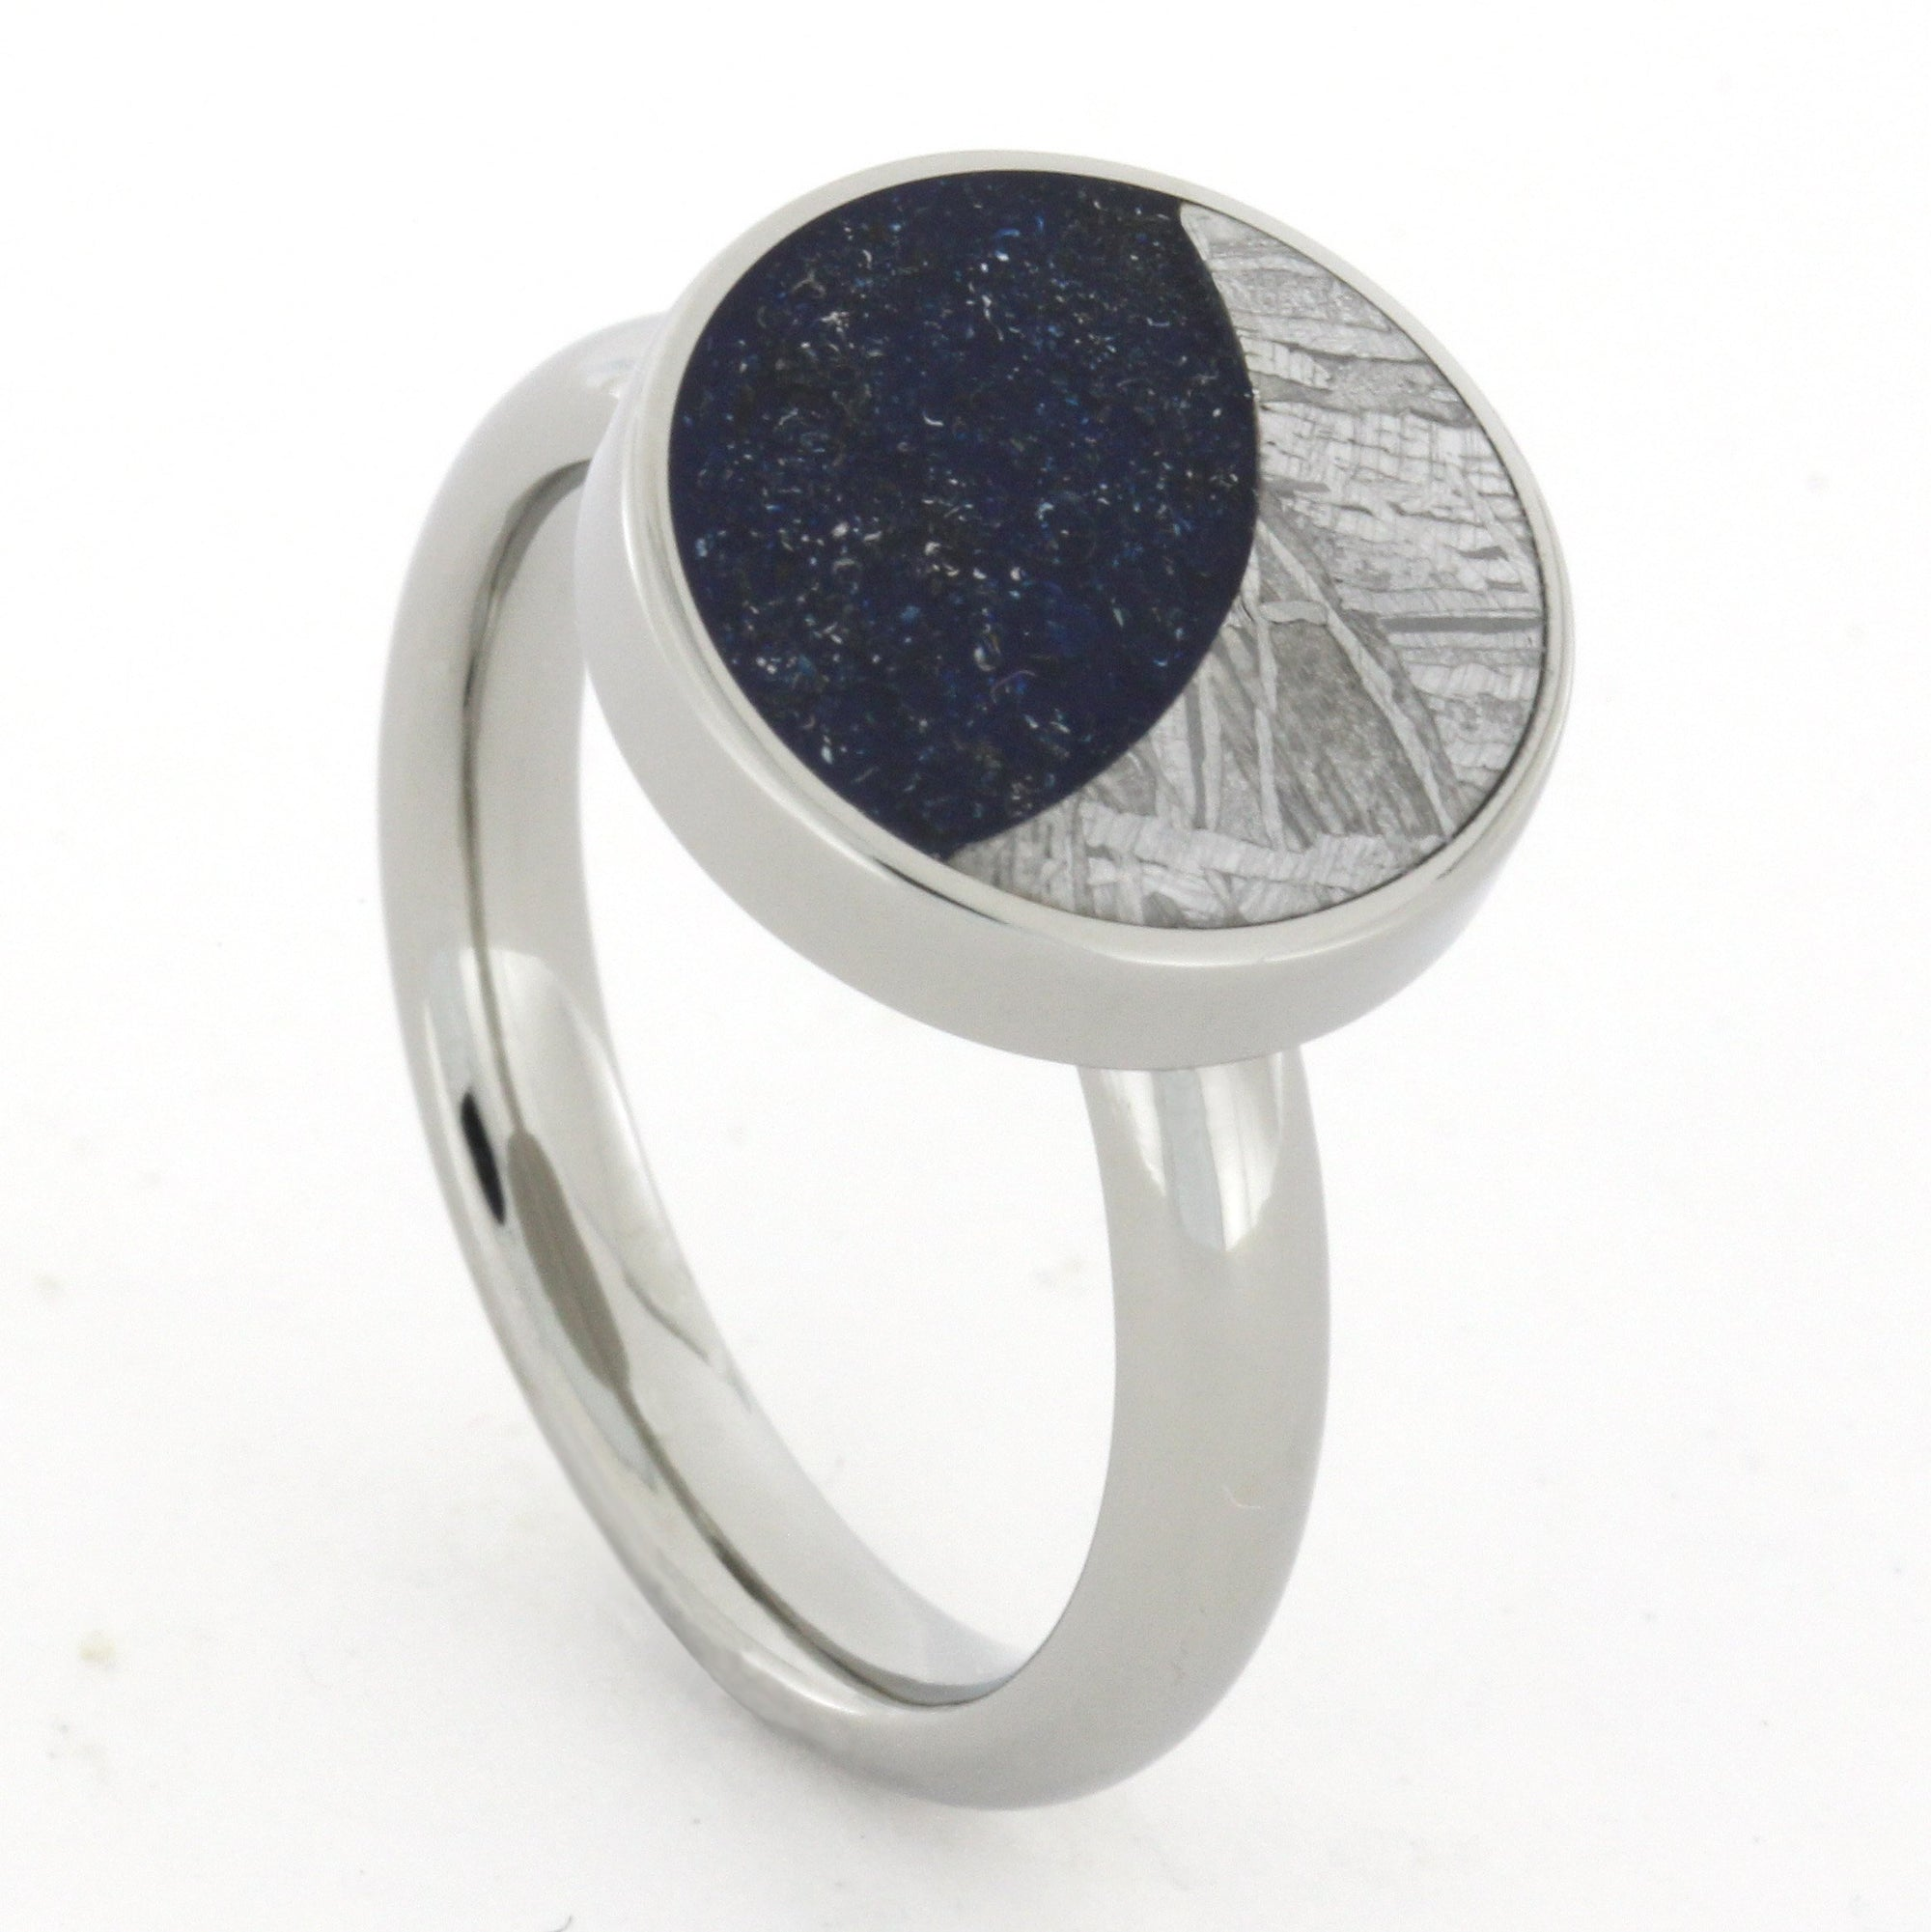 Starry Night Ring with Meteorite Moon and Blue Stardust™-2932 - Jewelry by Johan